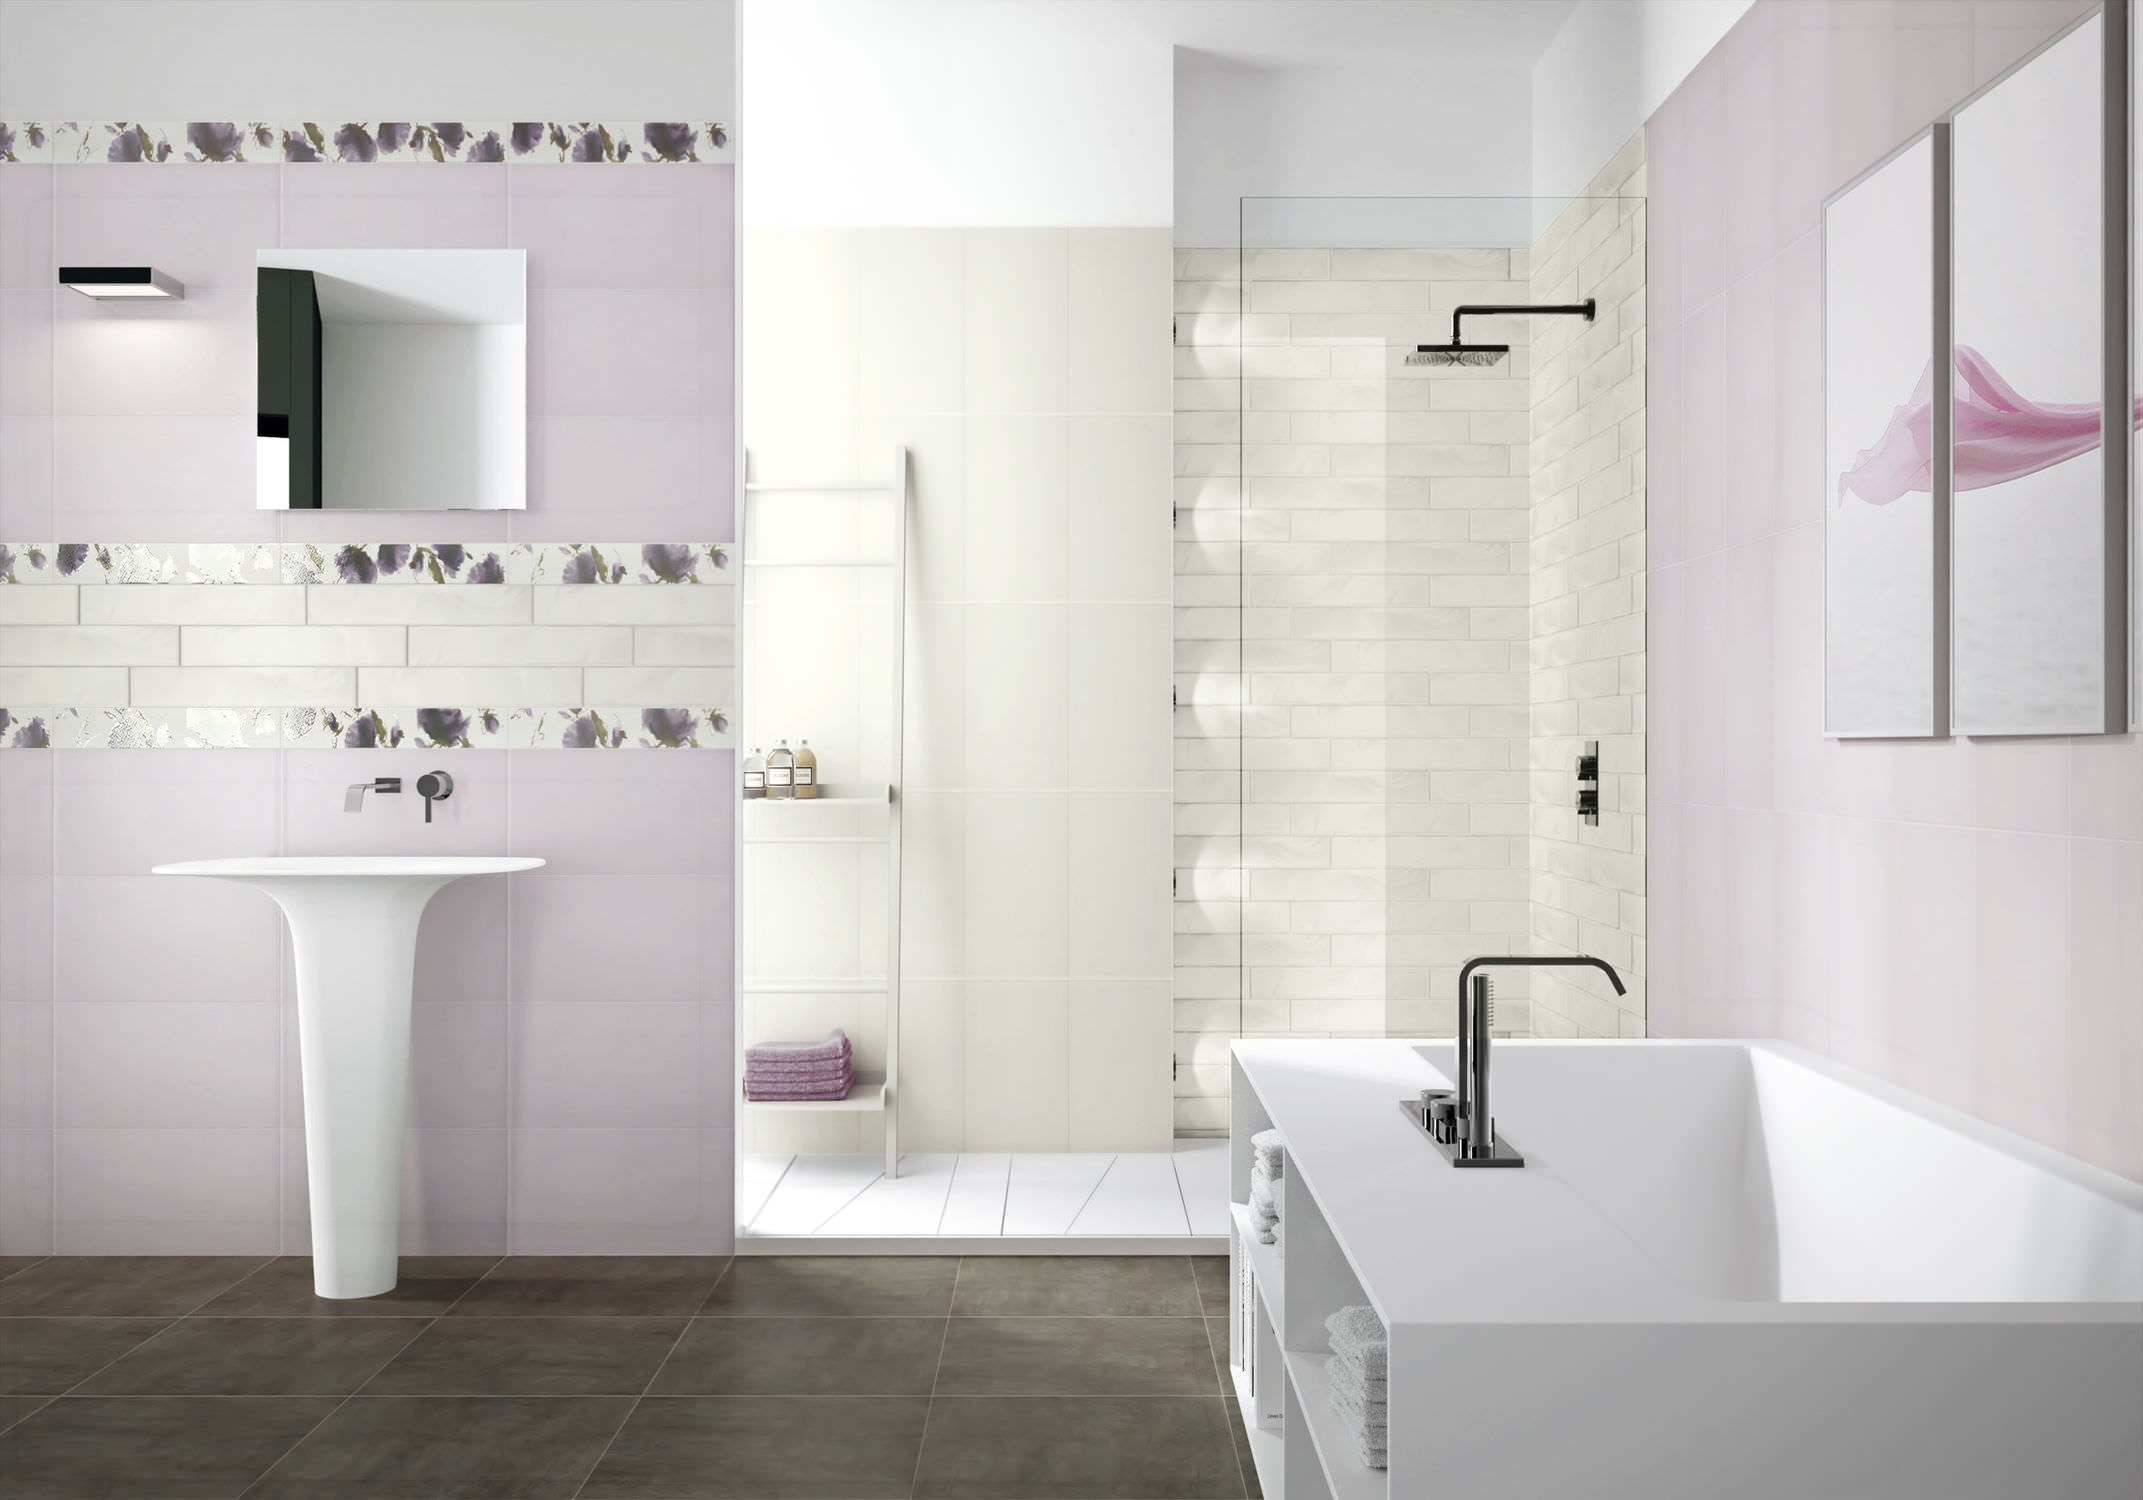 bathrooms-beautiful-pink-and-beige-shades-bathroom-plain-ceramic-wall-tiles-design-nice-wall-and-floor-tile-designs-for-modern-bathroom